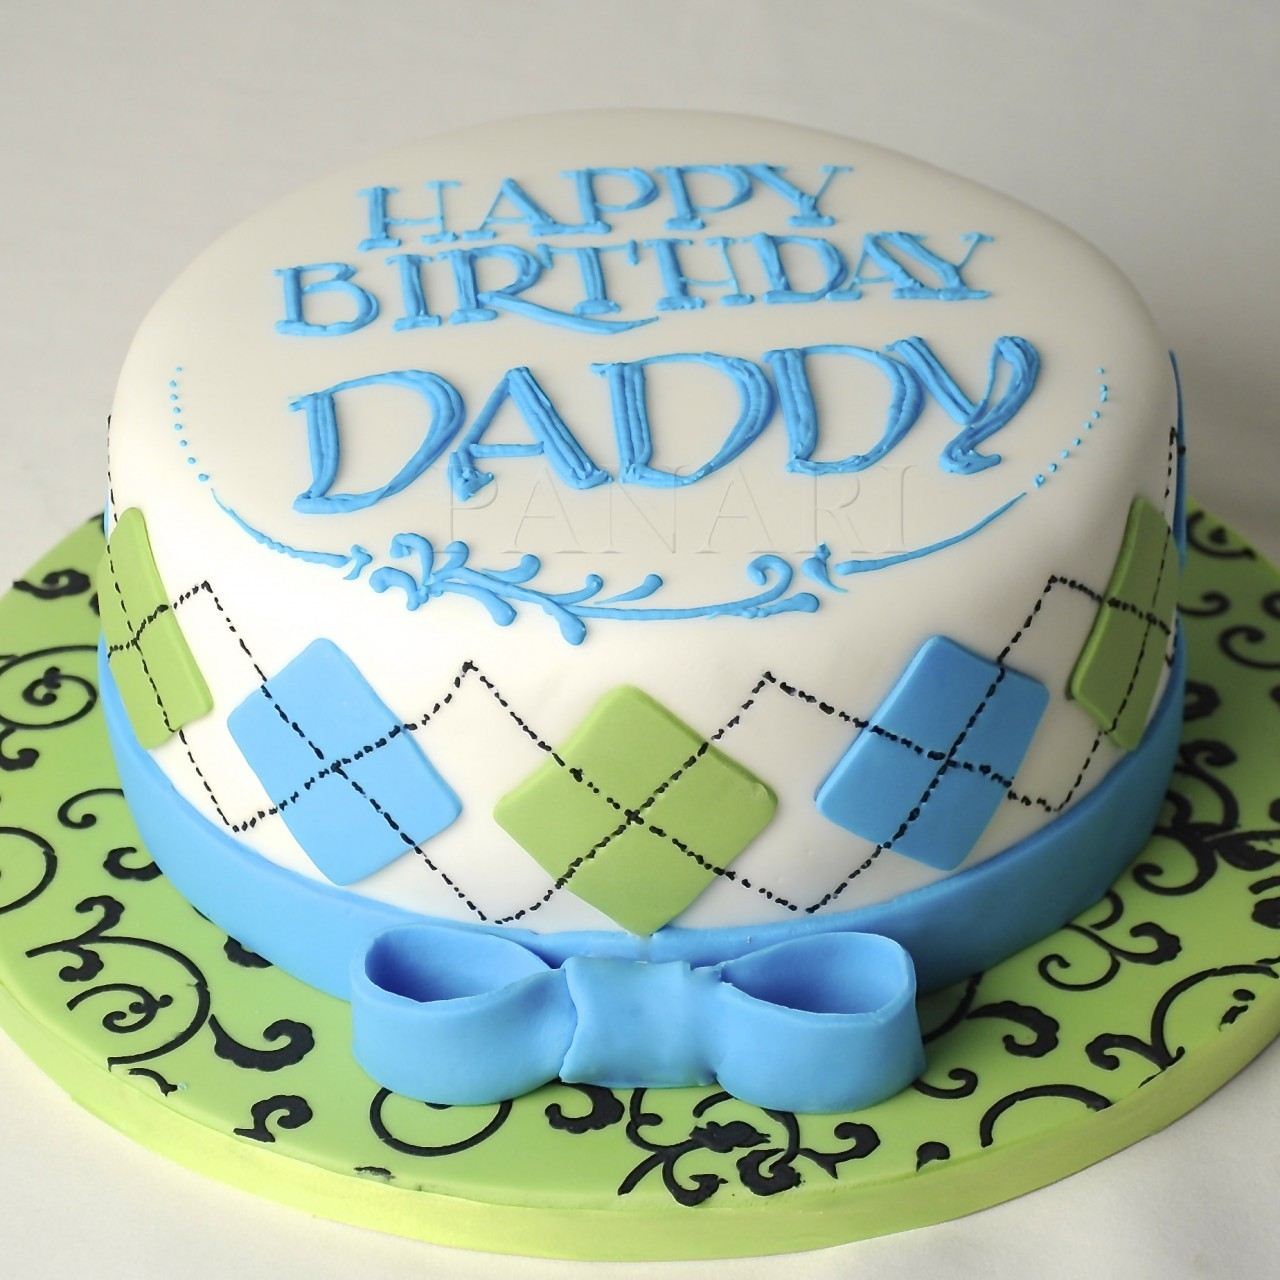 Birthday Cakes For Men Photo And Images